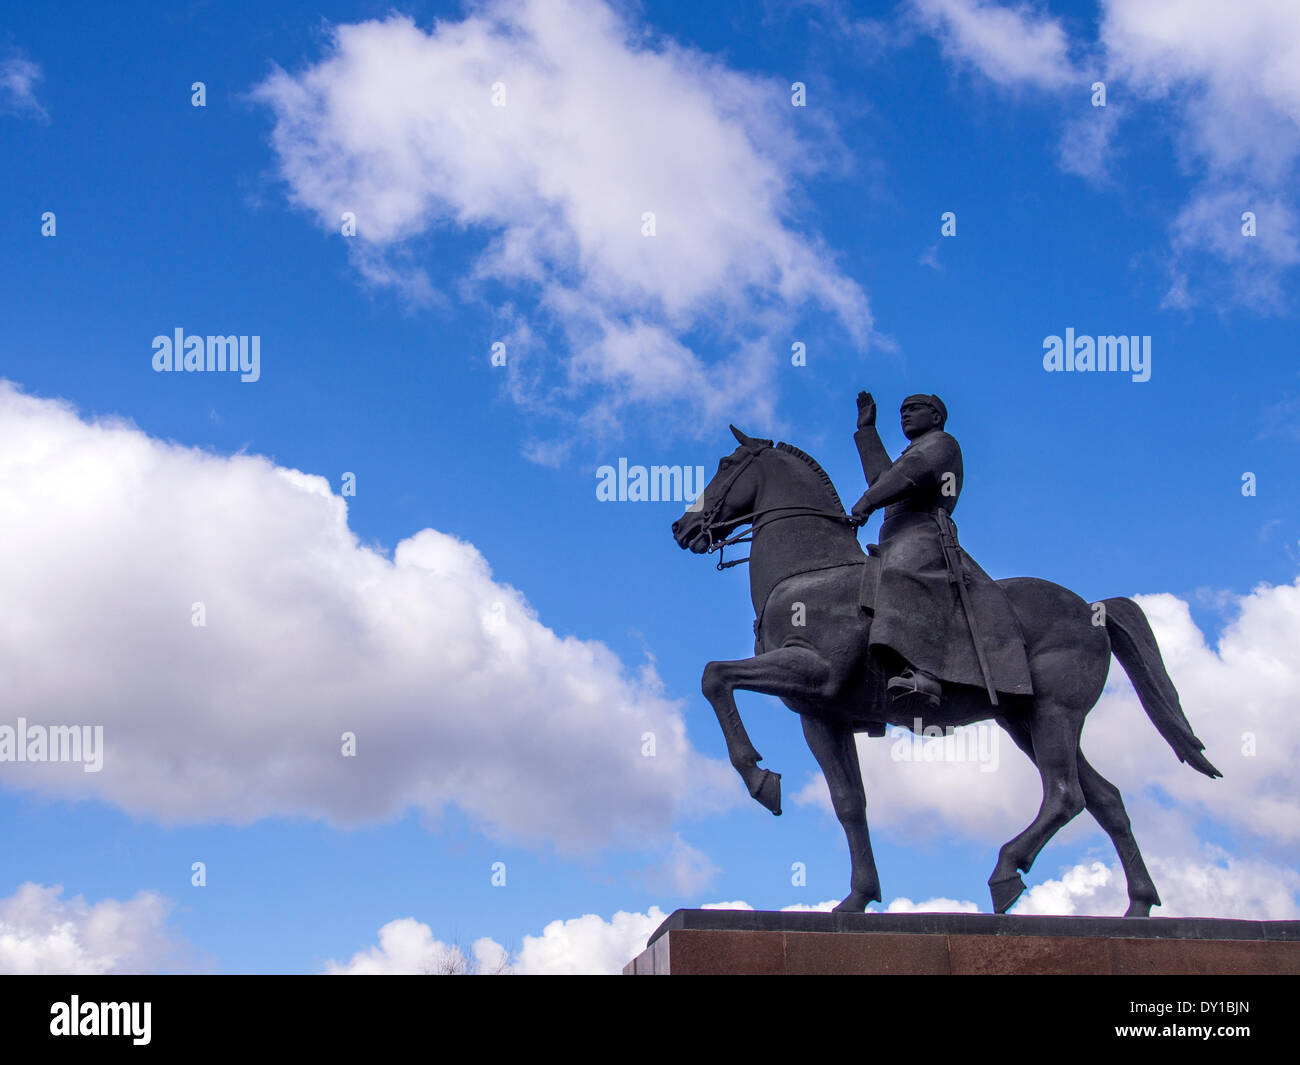 Monument Kliment Voroshilov on a horse on a background of blue sky with white clouds. Marshal Voroshilov was born Stock Photo